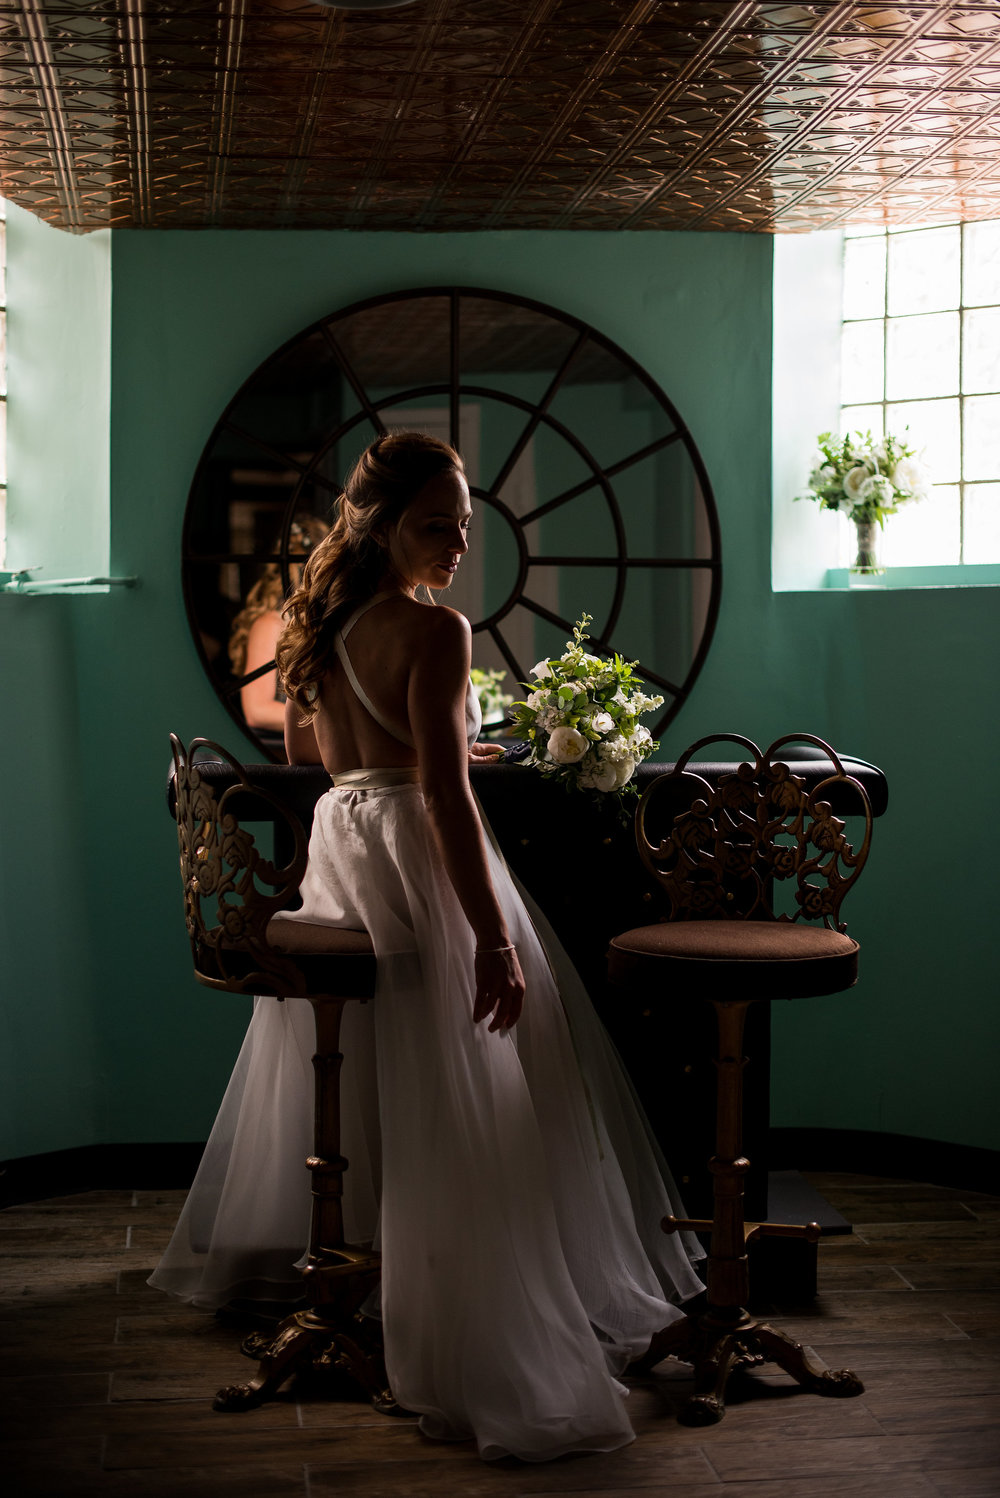 baltimore-wedding-photographer-sarah-annay-photography.jpg2.jpg